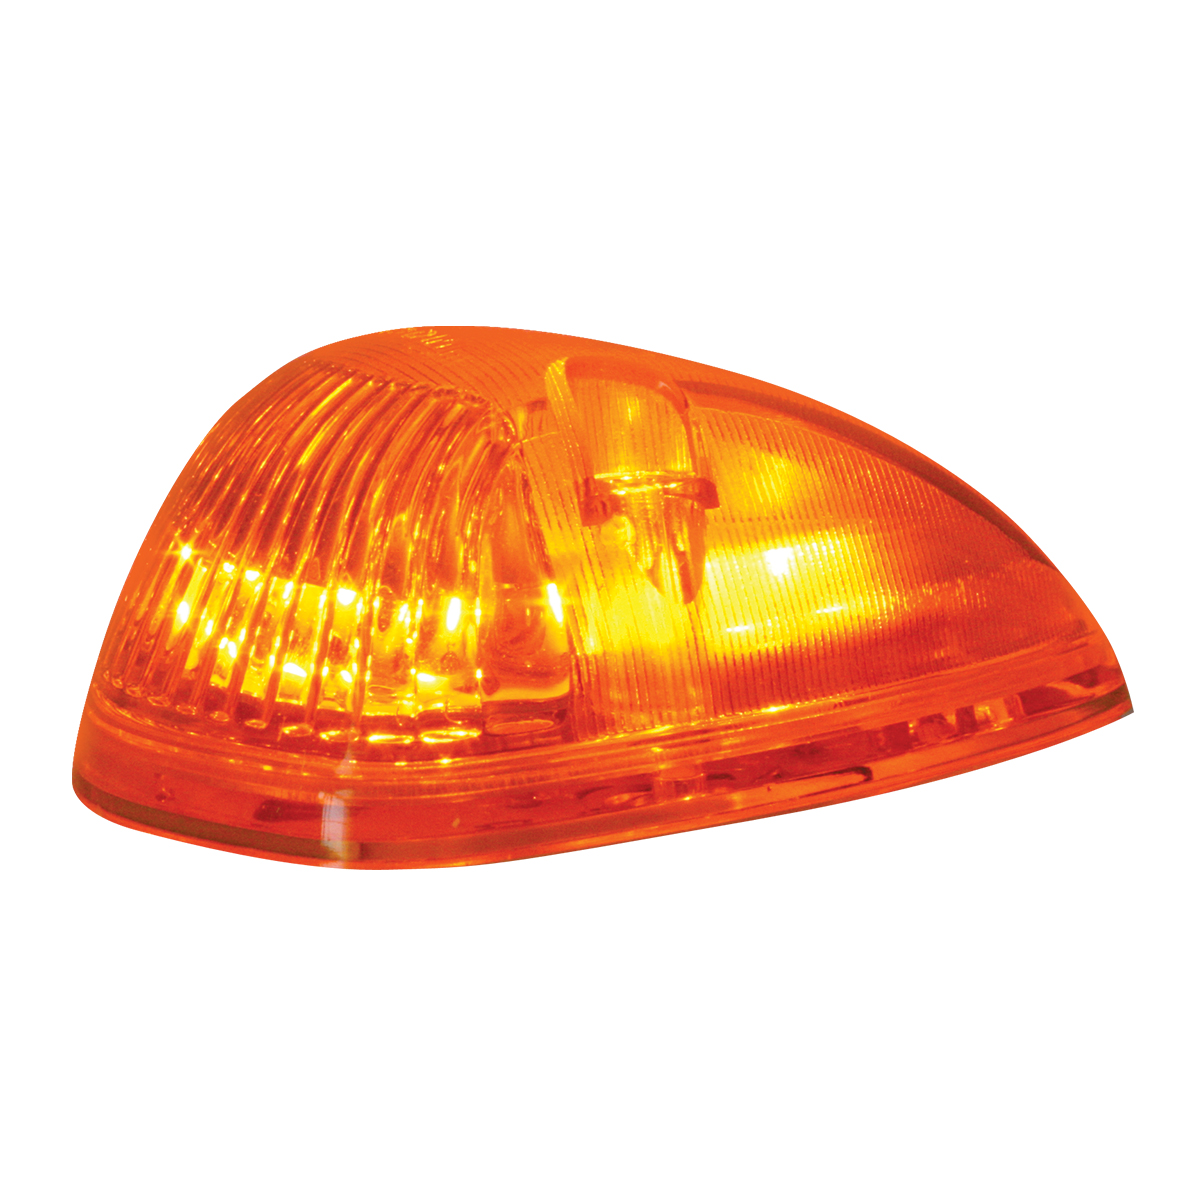 82260 Triangle Cab Light for Pickup/SUV/RV/Bus